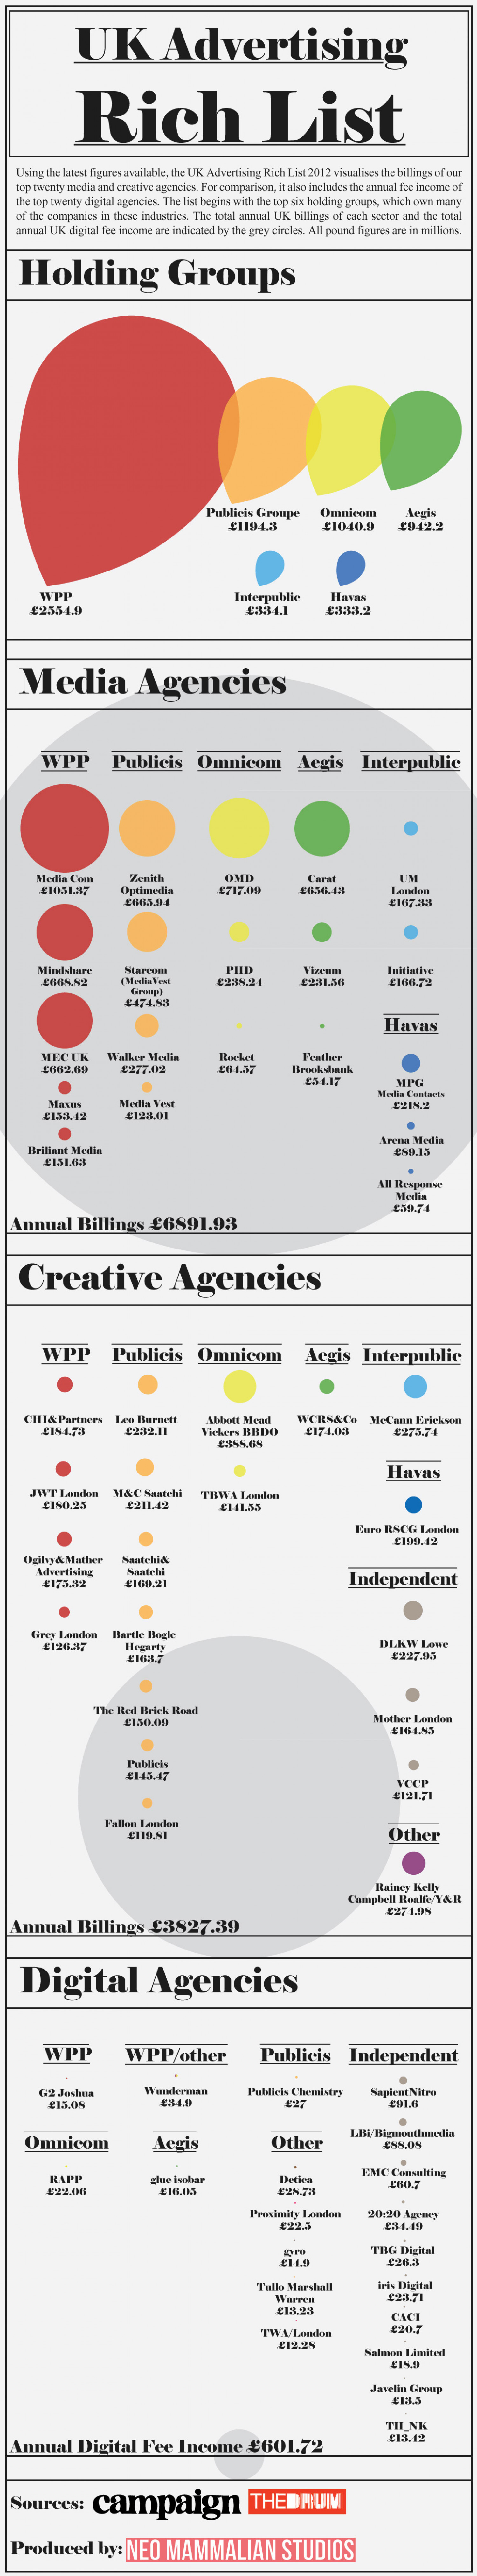 UK Advertising Rich List Infographic